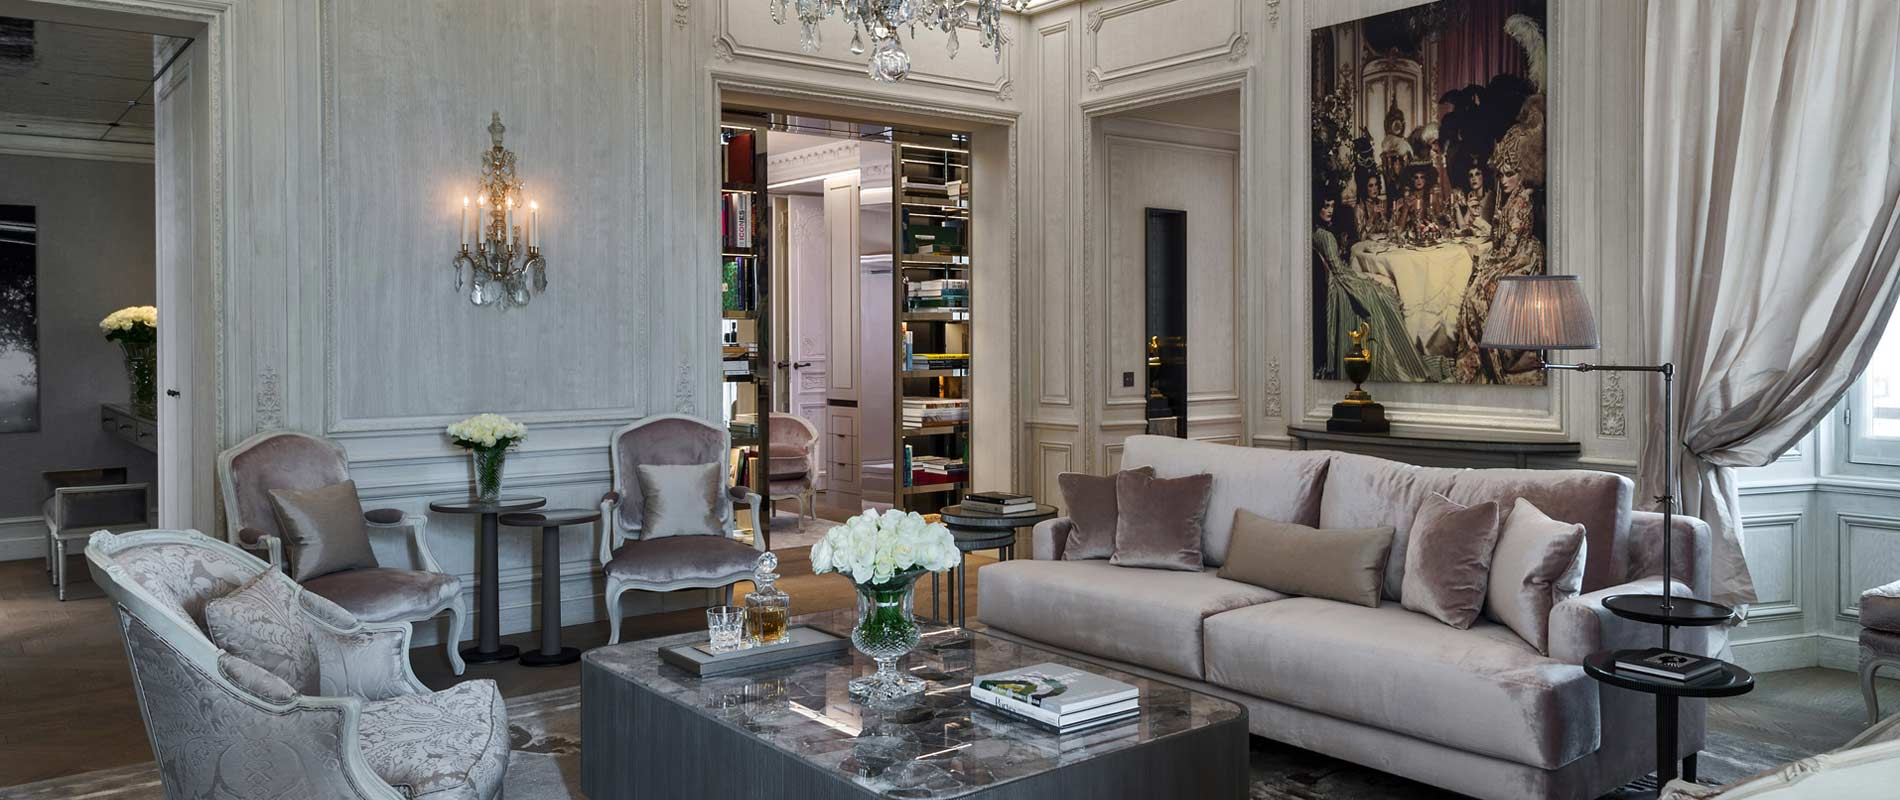 Hôtel de Crillon, Paris - A Timeless Taste of Grace and Grandeur